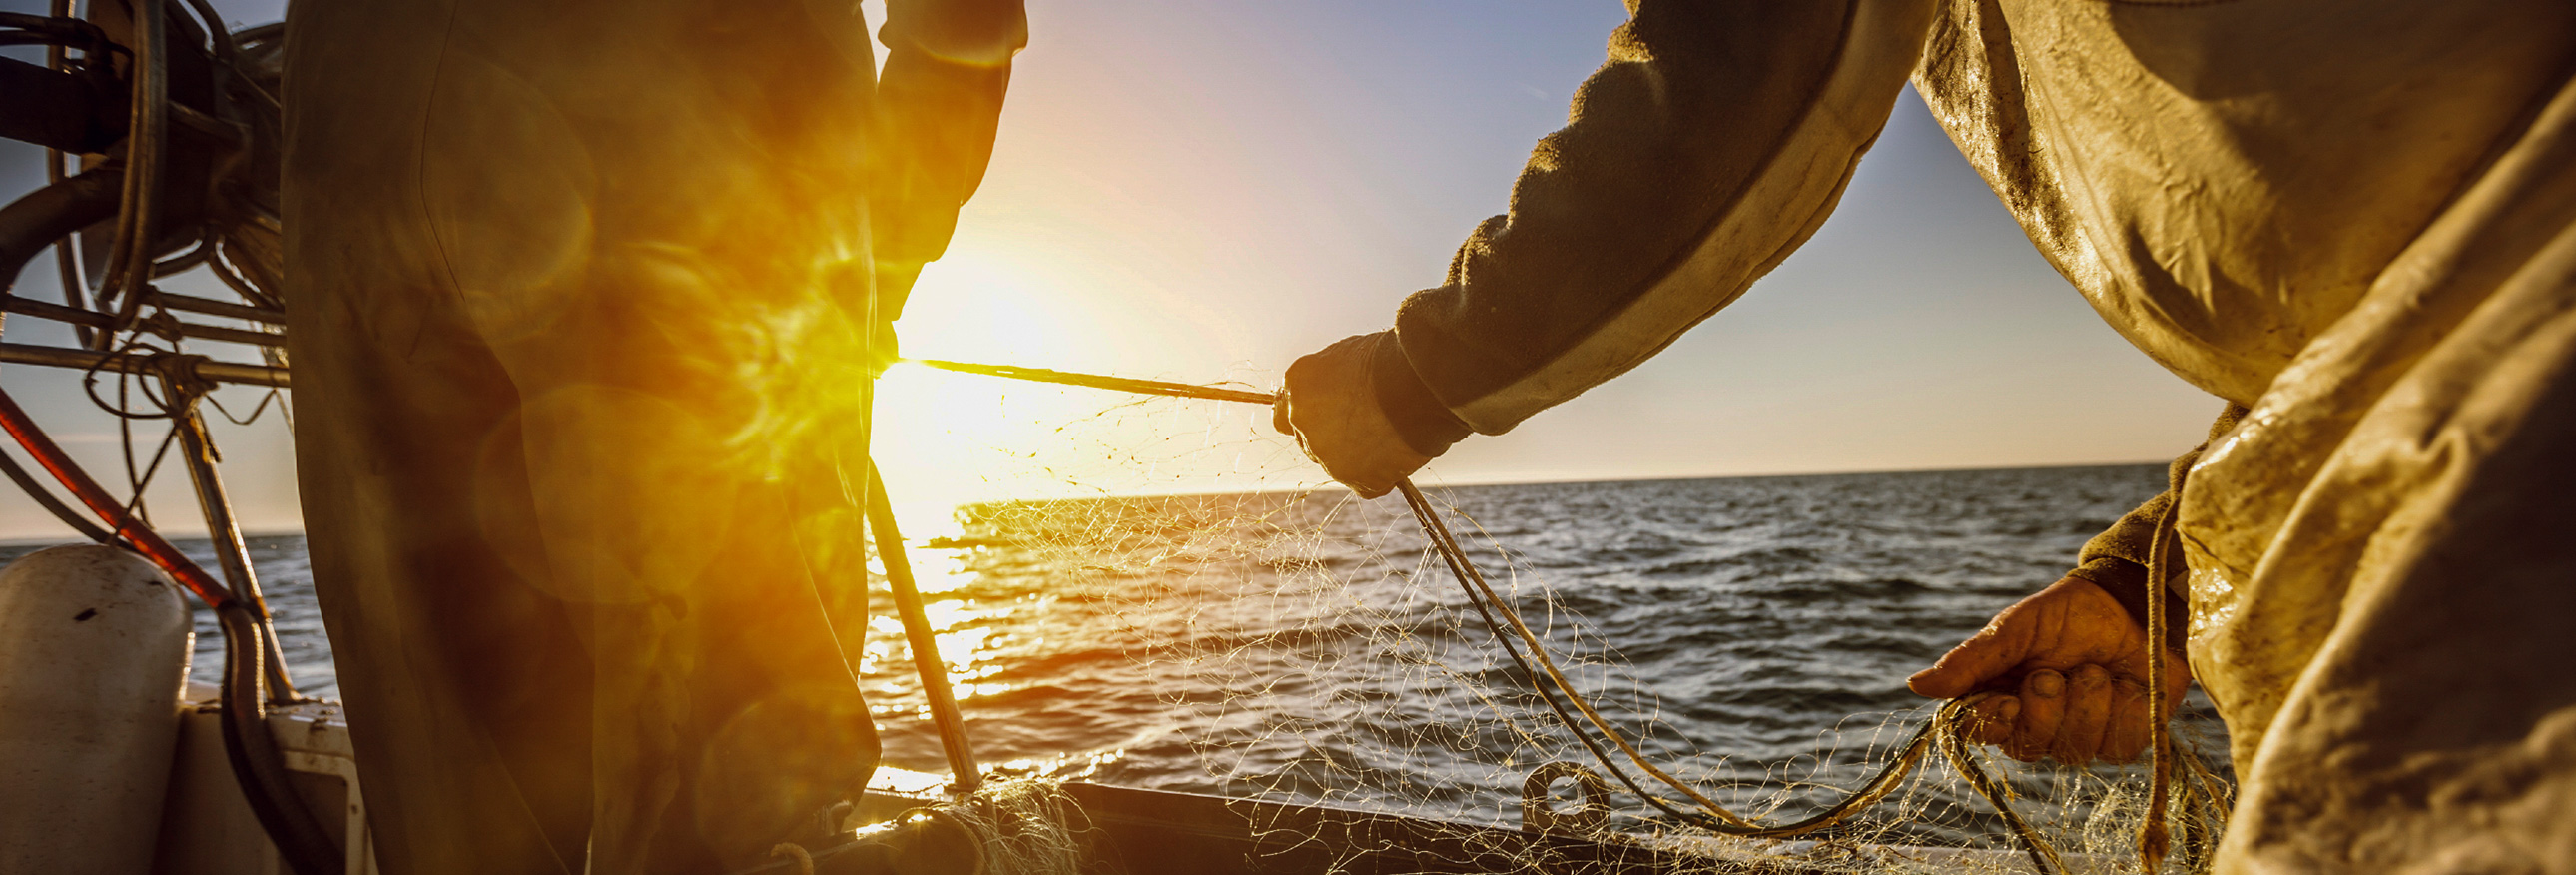 fisherman tying nets on board a boat with sun in background